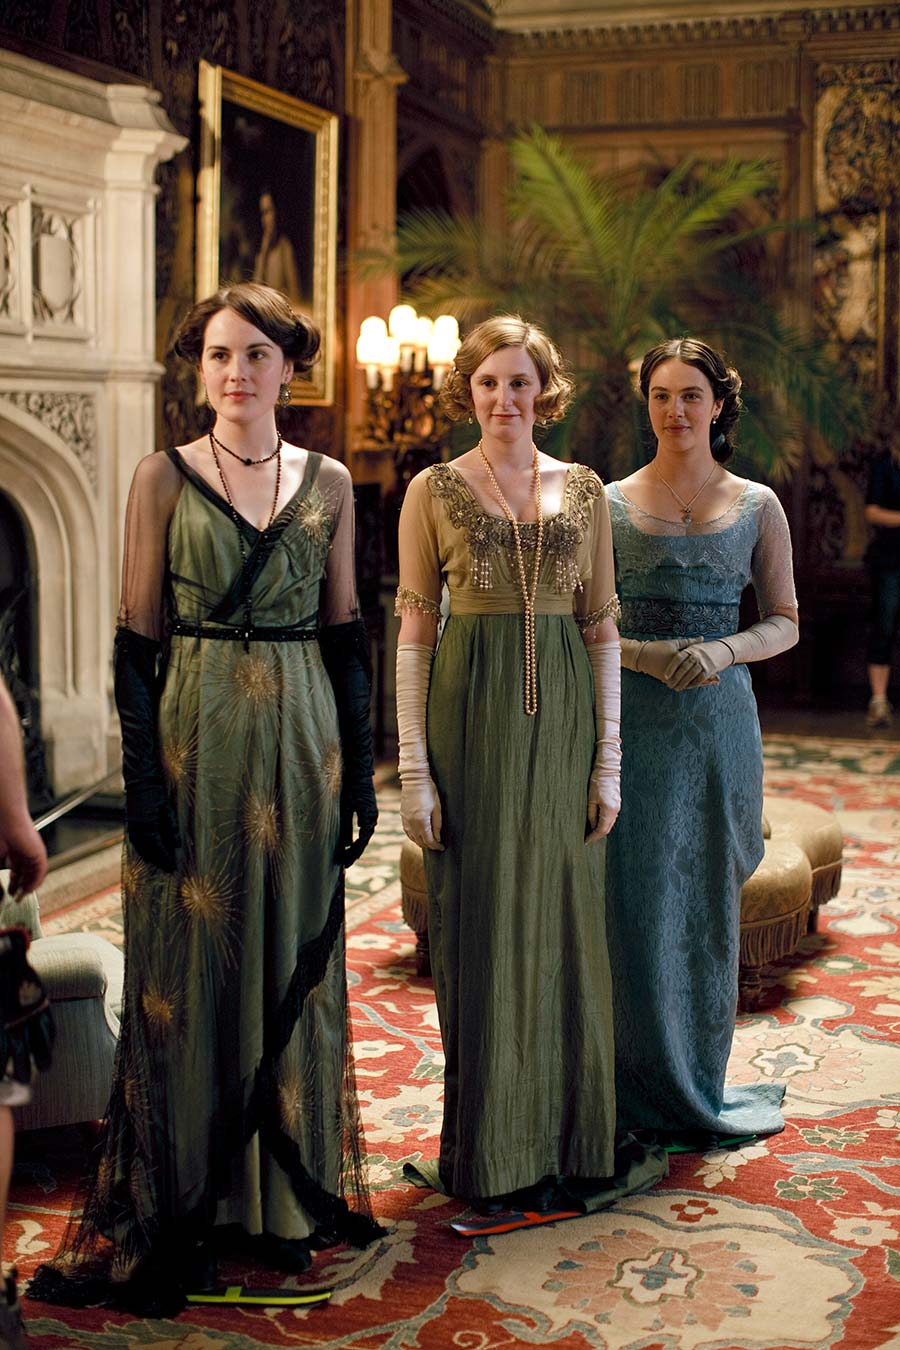 Dressing Downton: Changing Fashion for Changing Times, Through Jan. 7, Lightner Museum, St. Augustine